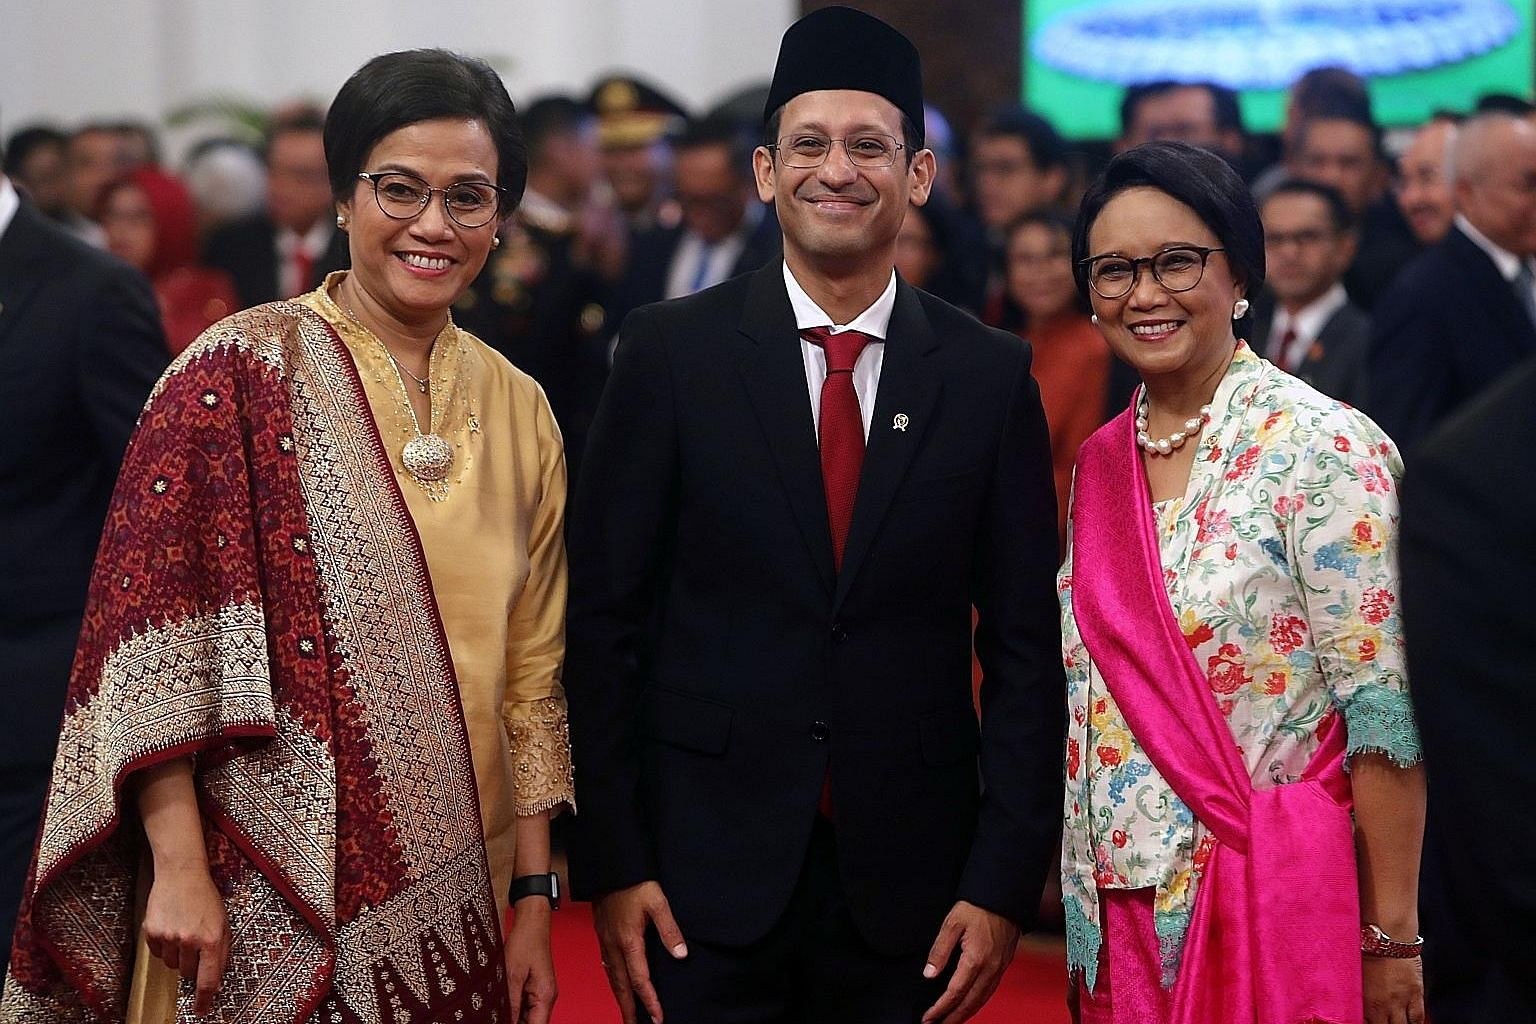 Education and Culture Minister Nadiem Makarim with Finance Minister Sri Mulyani Indrawati (far left) and Foreign Minister Retno Marsudi before the Indonesian Cabinet's swearing-in ceremony at Merdeka Palace yesterday.